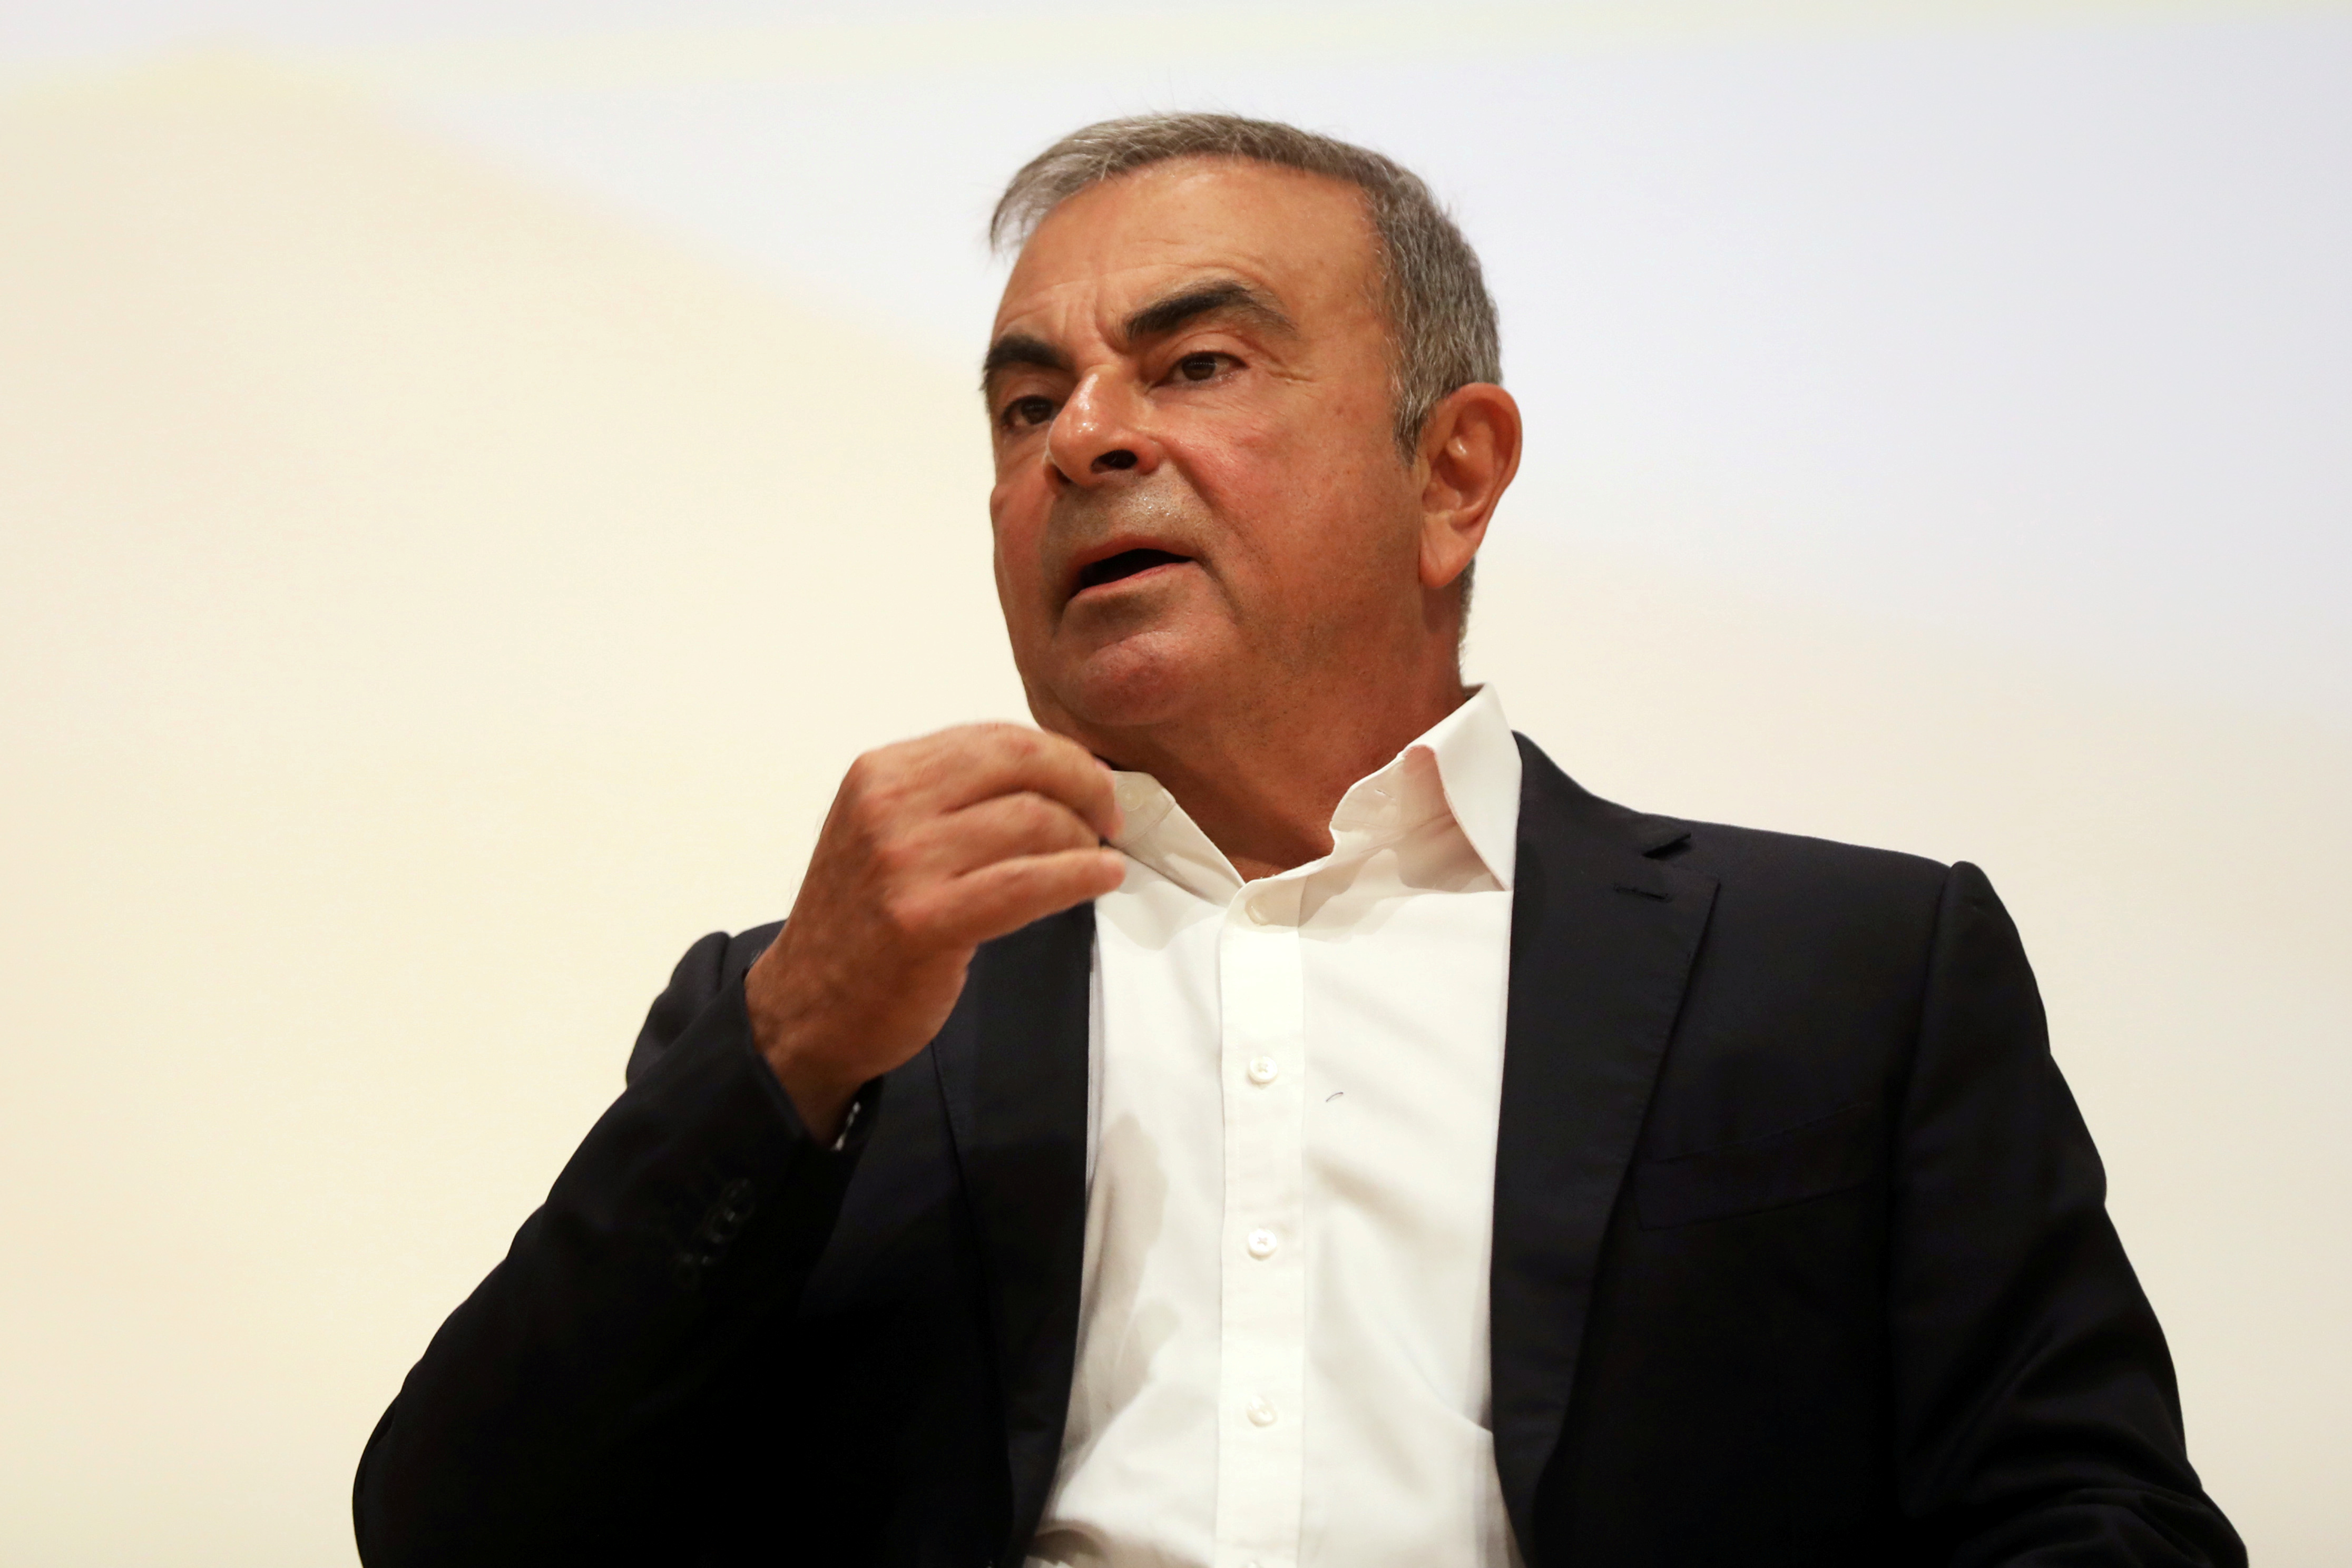 Carlos Ghosn, the former Nissan and Renault chief executive, gestures as he speaks during a news conference at the Holy Spirit University of Kaslik, in Jounieh, Lebanon September 29, 2020. REUTERS/Mohamed Azakir/File Photo